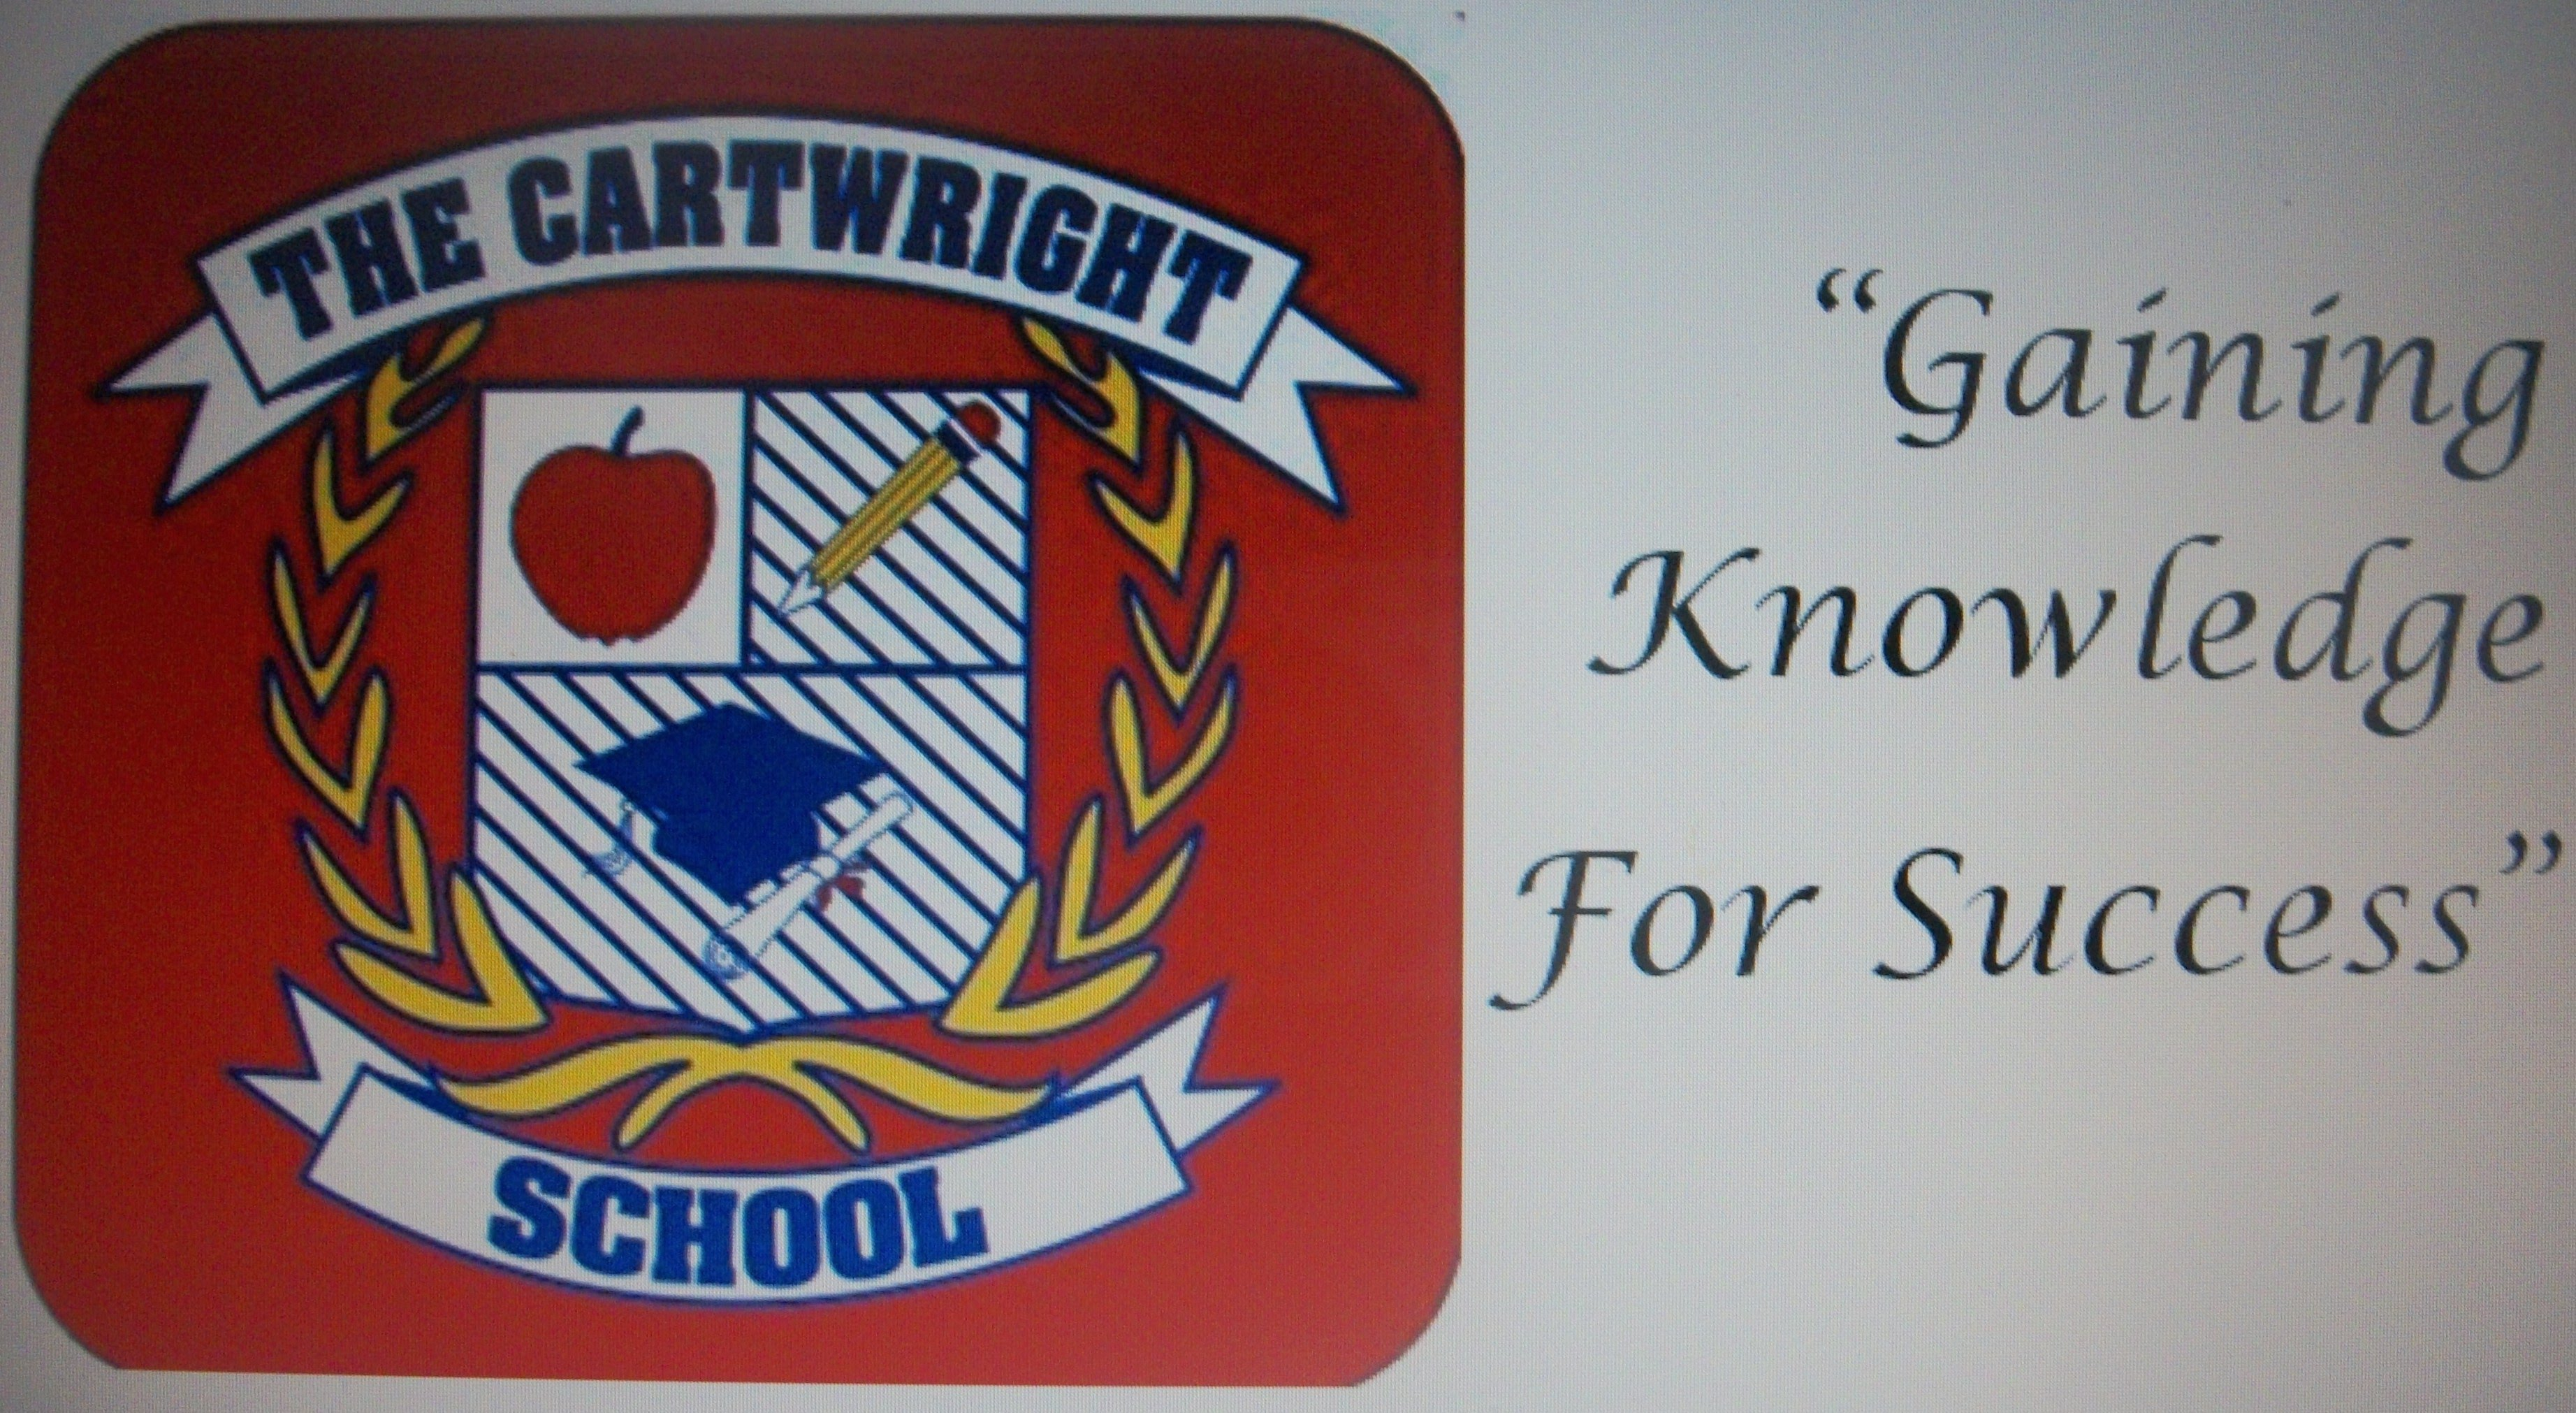 THE CARTWRIGHT SCHOOL